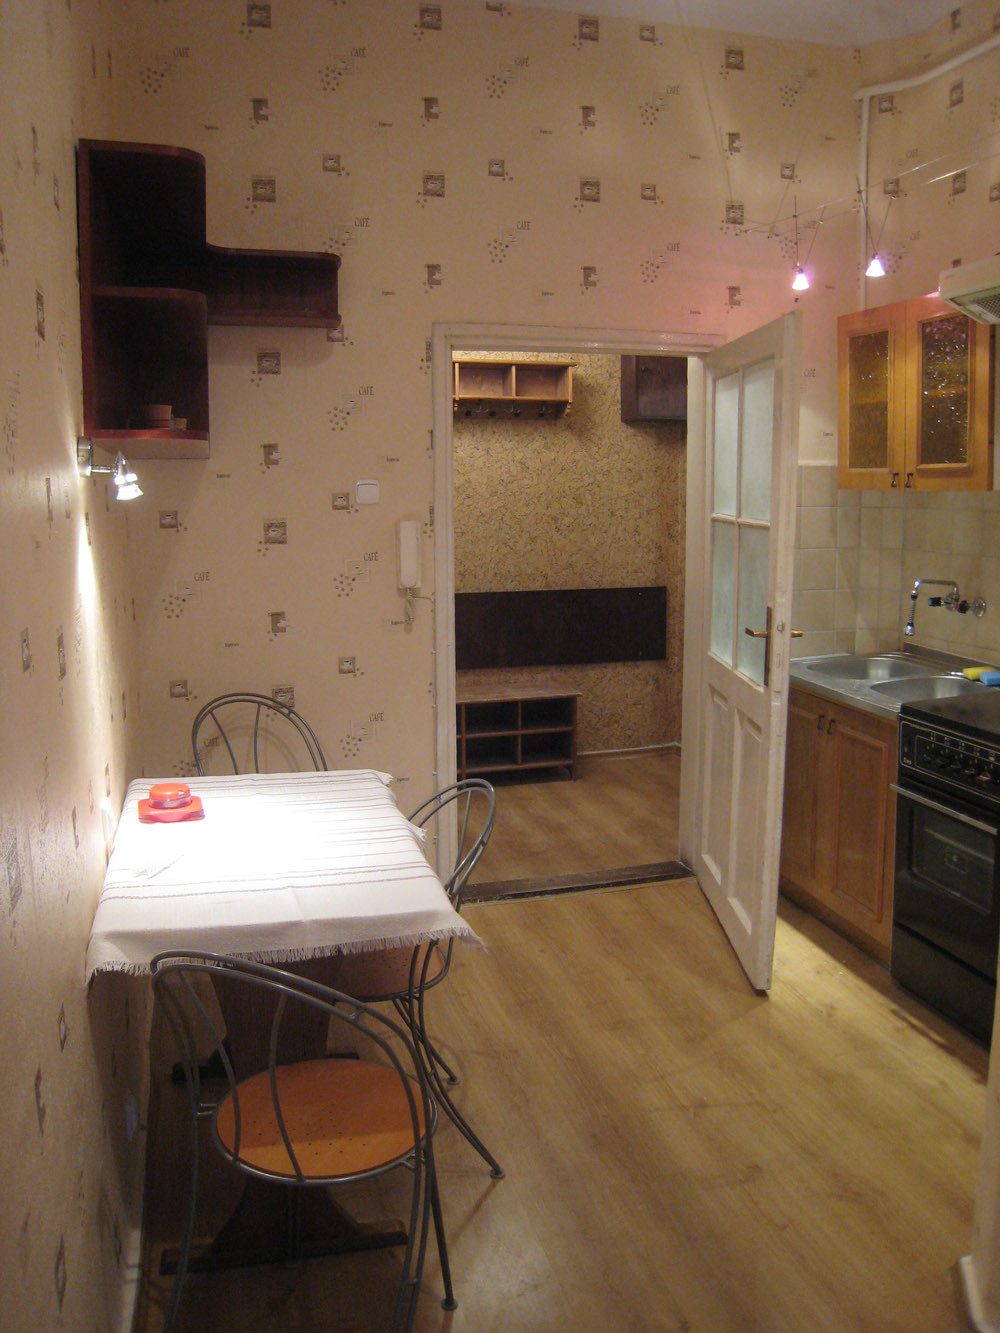 kitchen for rent wood floors one room but quite big flat 40m2 with to from now no